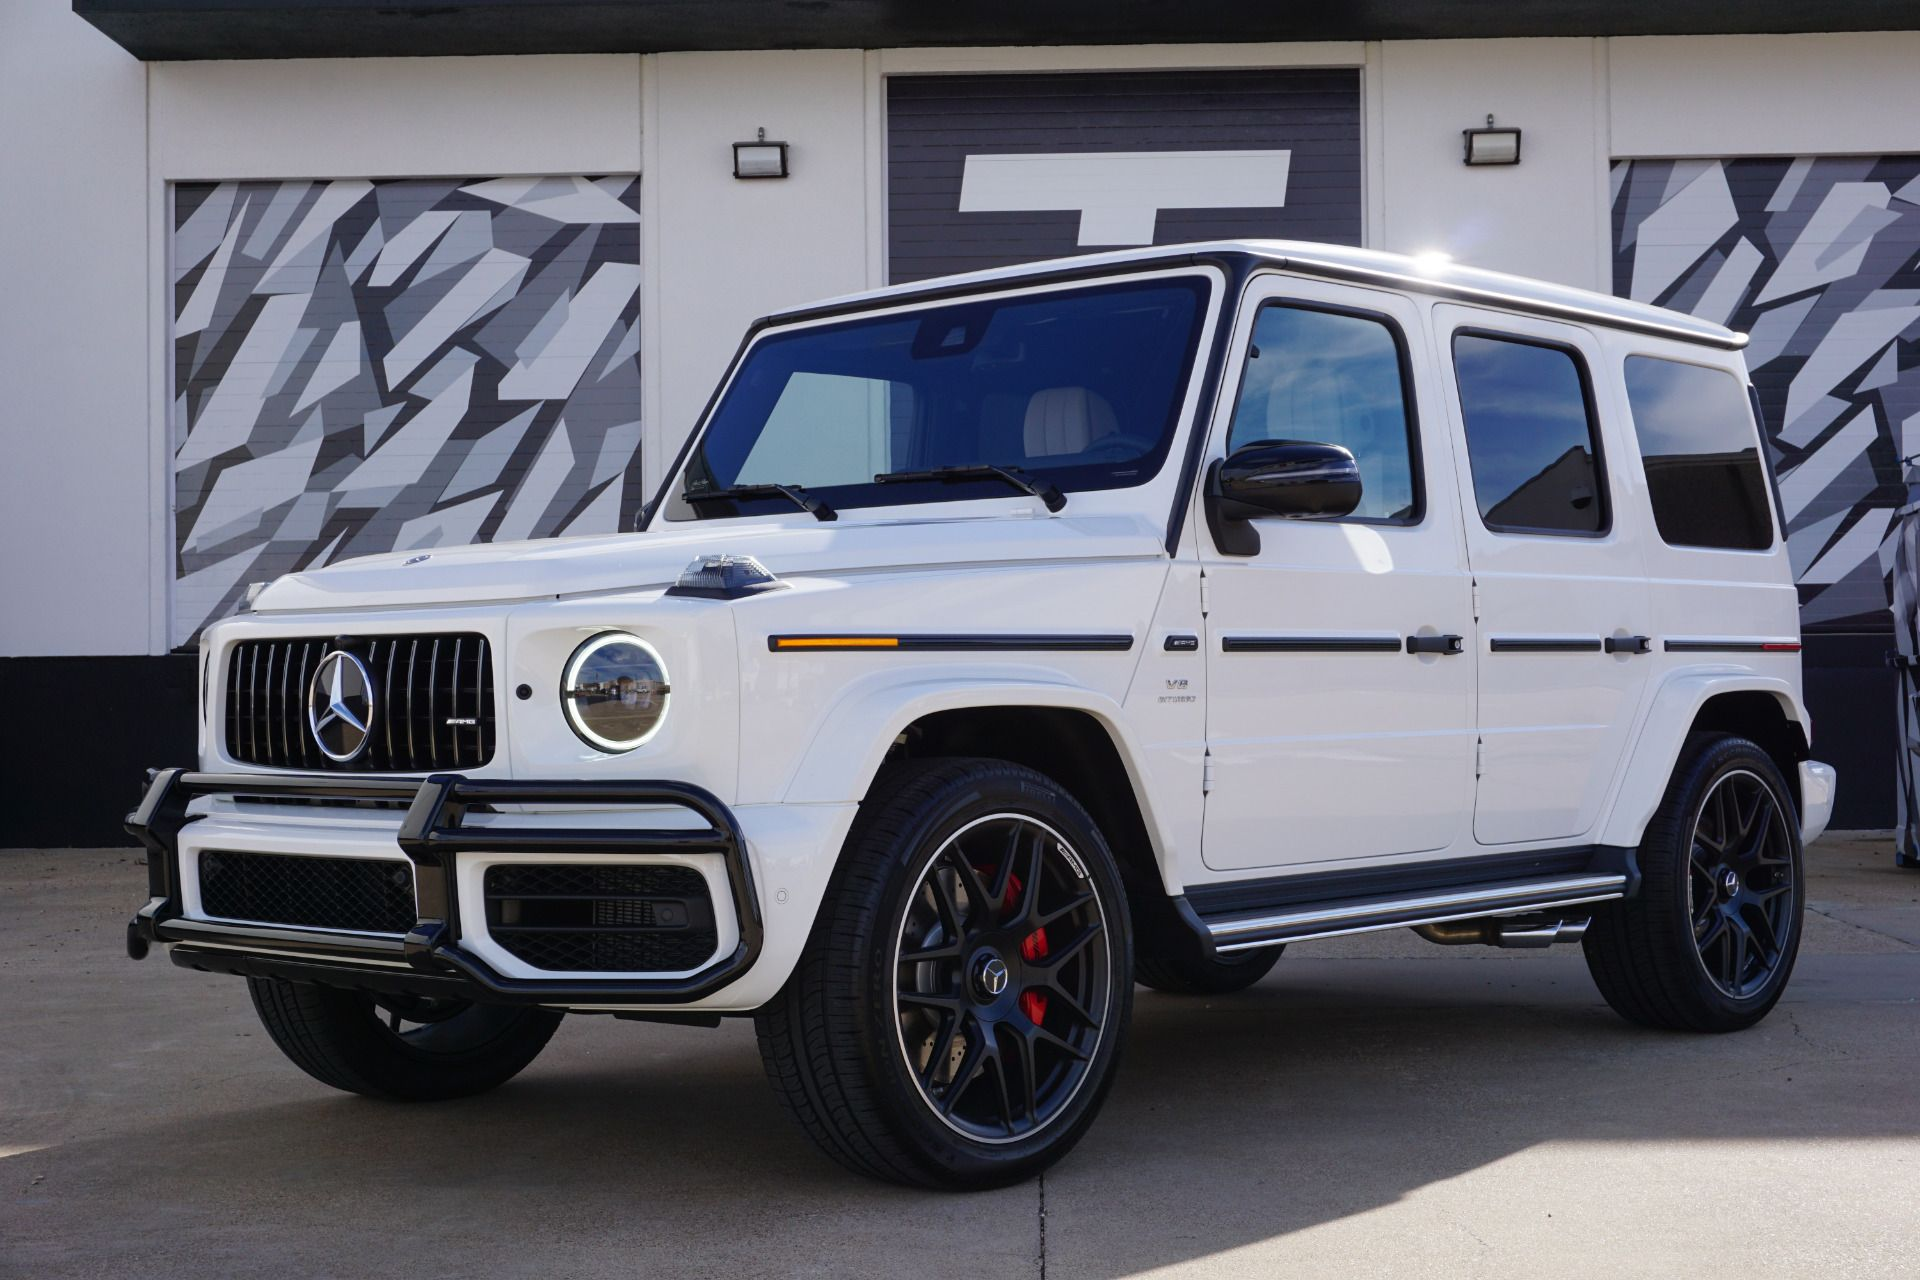 Google Image Result For Https Www Tacticalfleet Com Imagetag 12863 5 L Used 2020 Mercedes Benz G Class In 2020 Mercedes Benz Suv Mercedes Benz G Class Mercedes Jeep